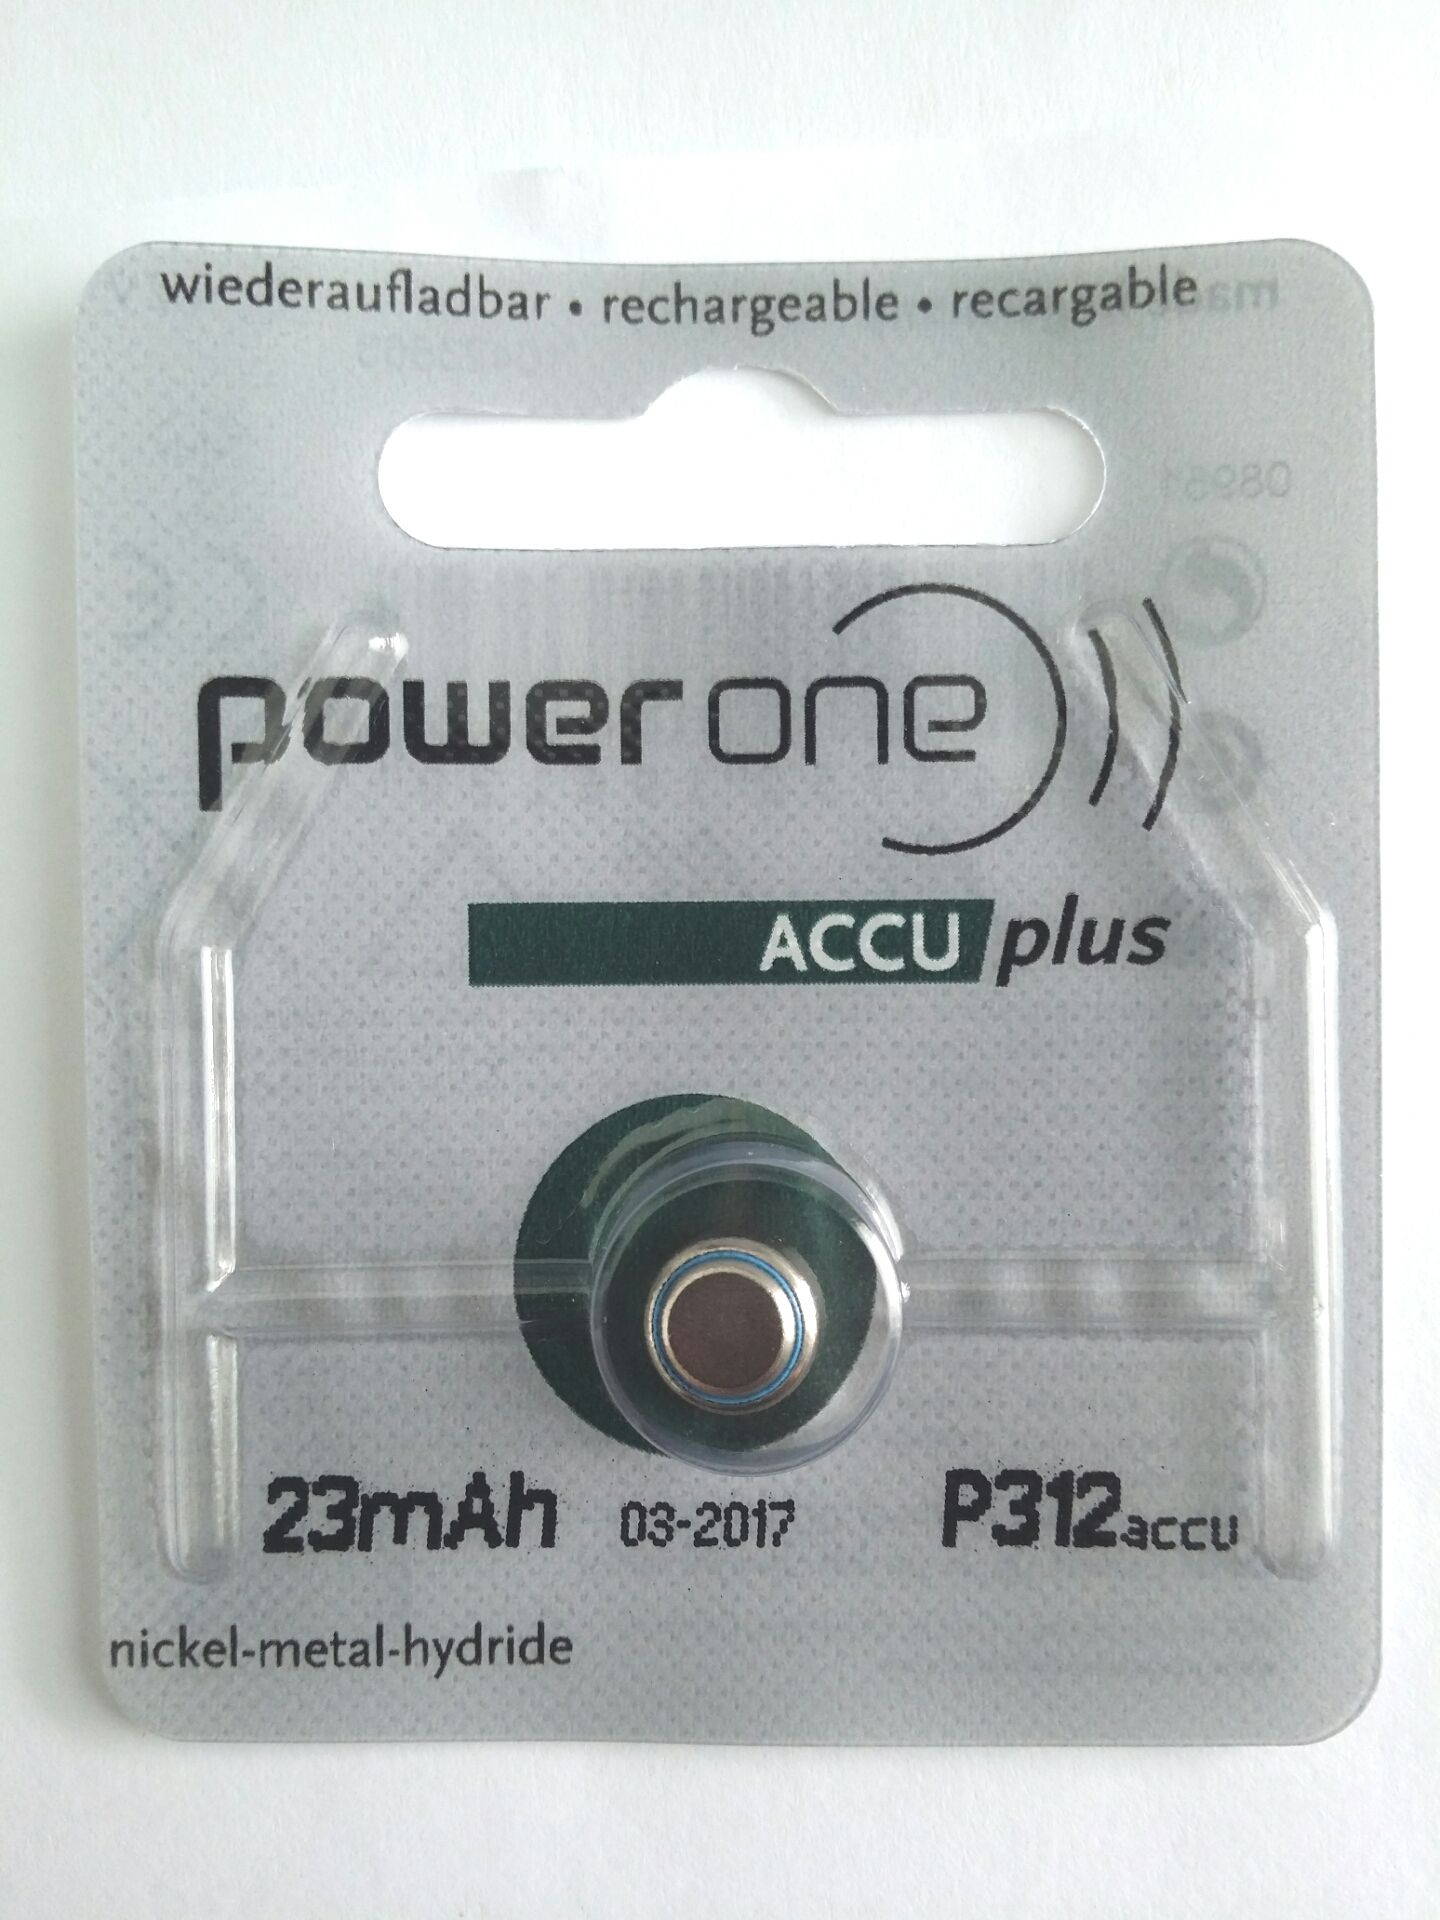 Power One ACCU Plus - Rechargeable Battery